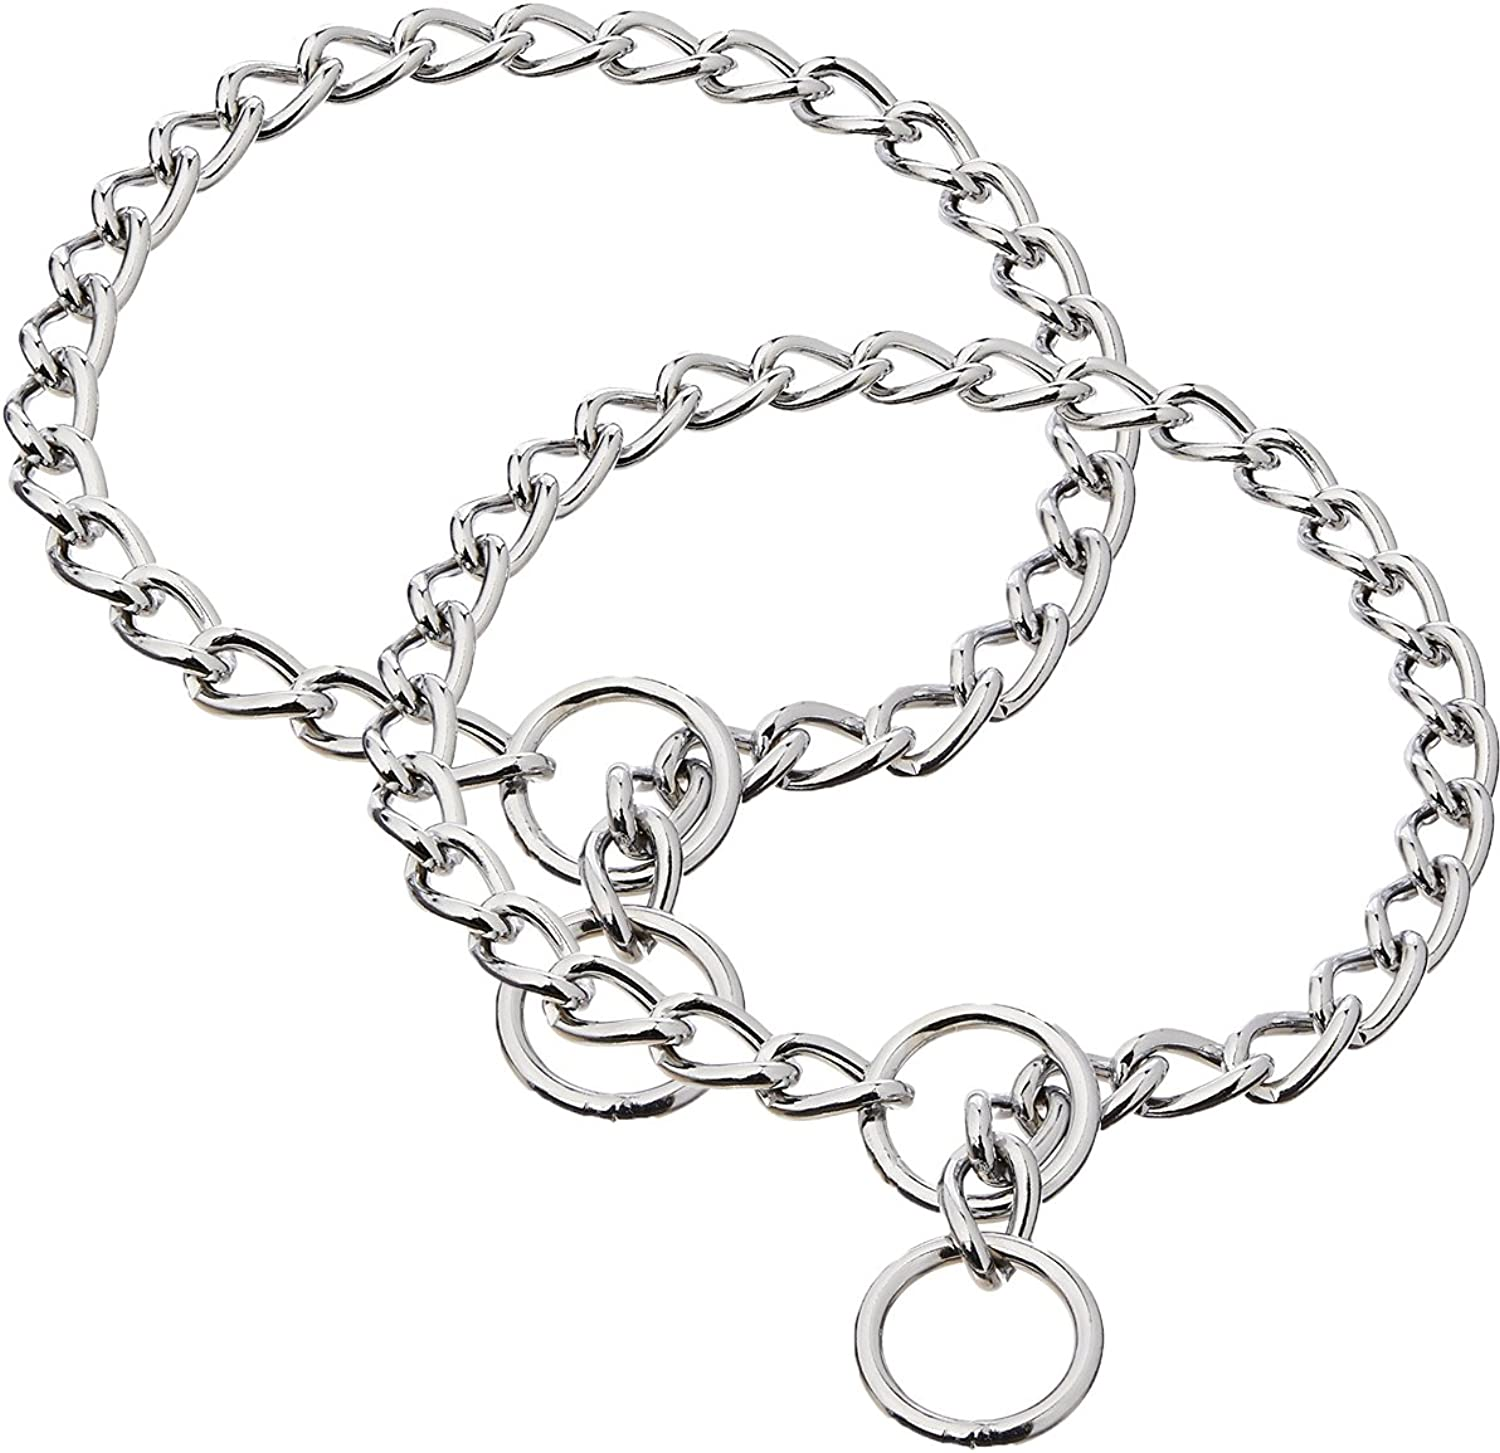 Coastal Pet Products DCP554022 Titan XHeavy Chain Dog Training Choke Collar with 4mm Link, 22inch, Chrome (2 Pack)